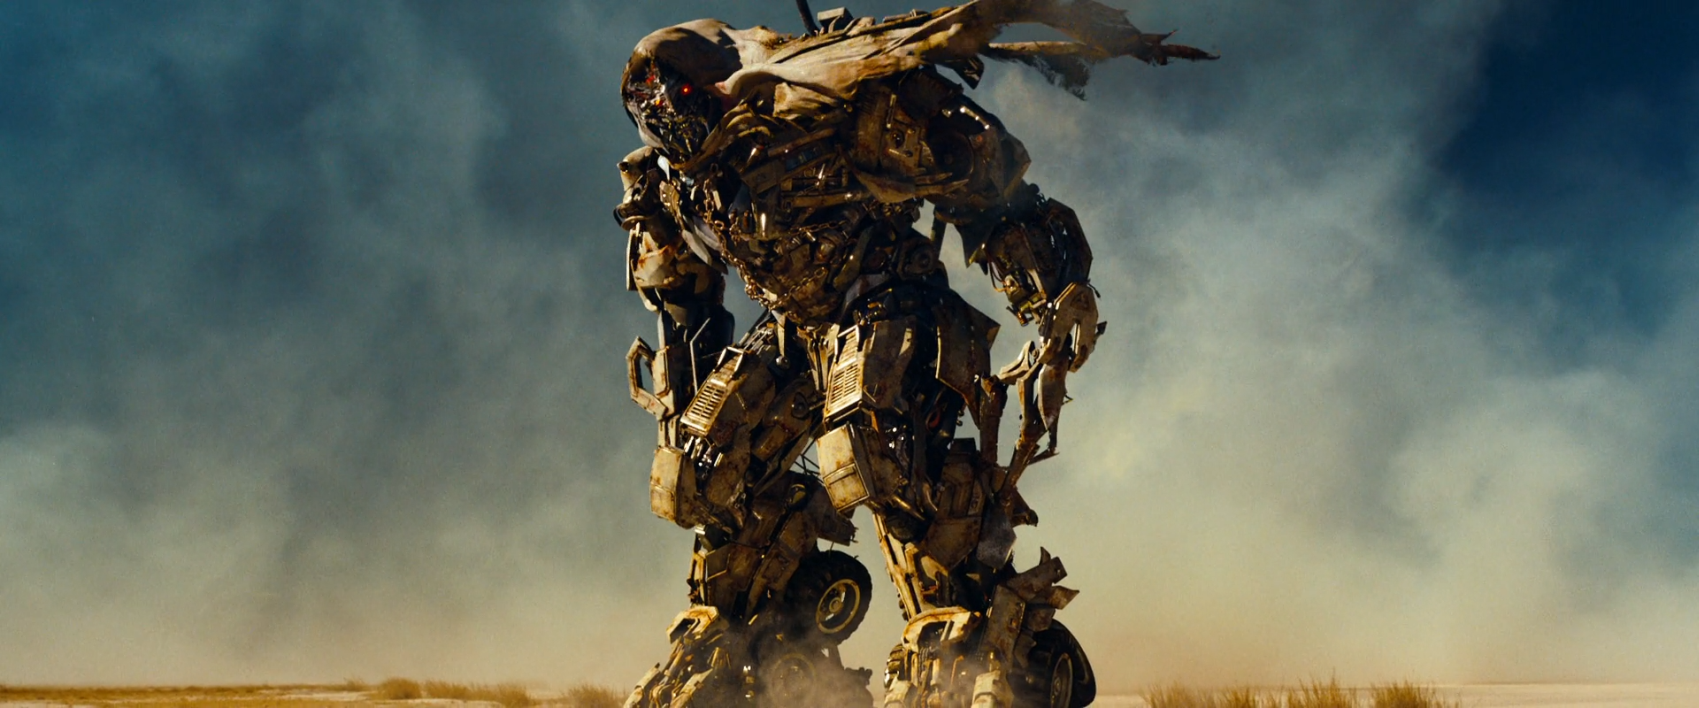 Megatron (Movie) | Transformers Wiki | Fandom powered by Wikia